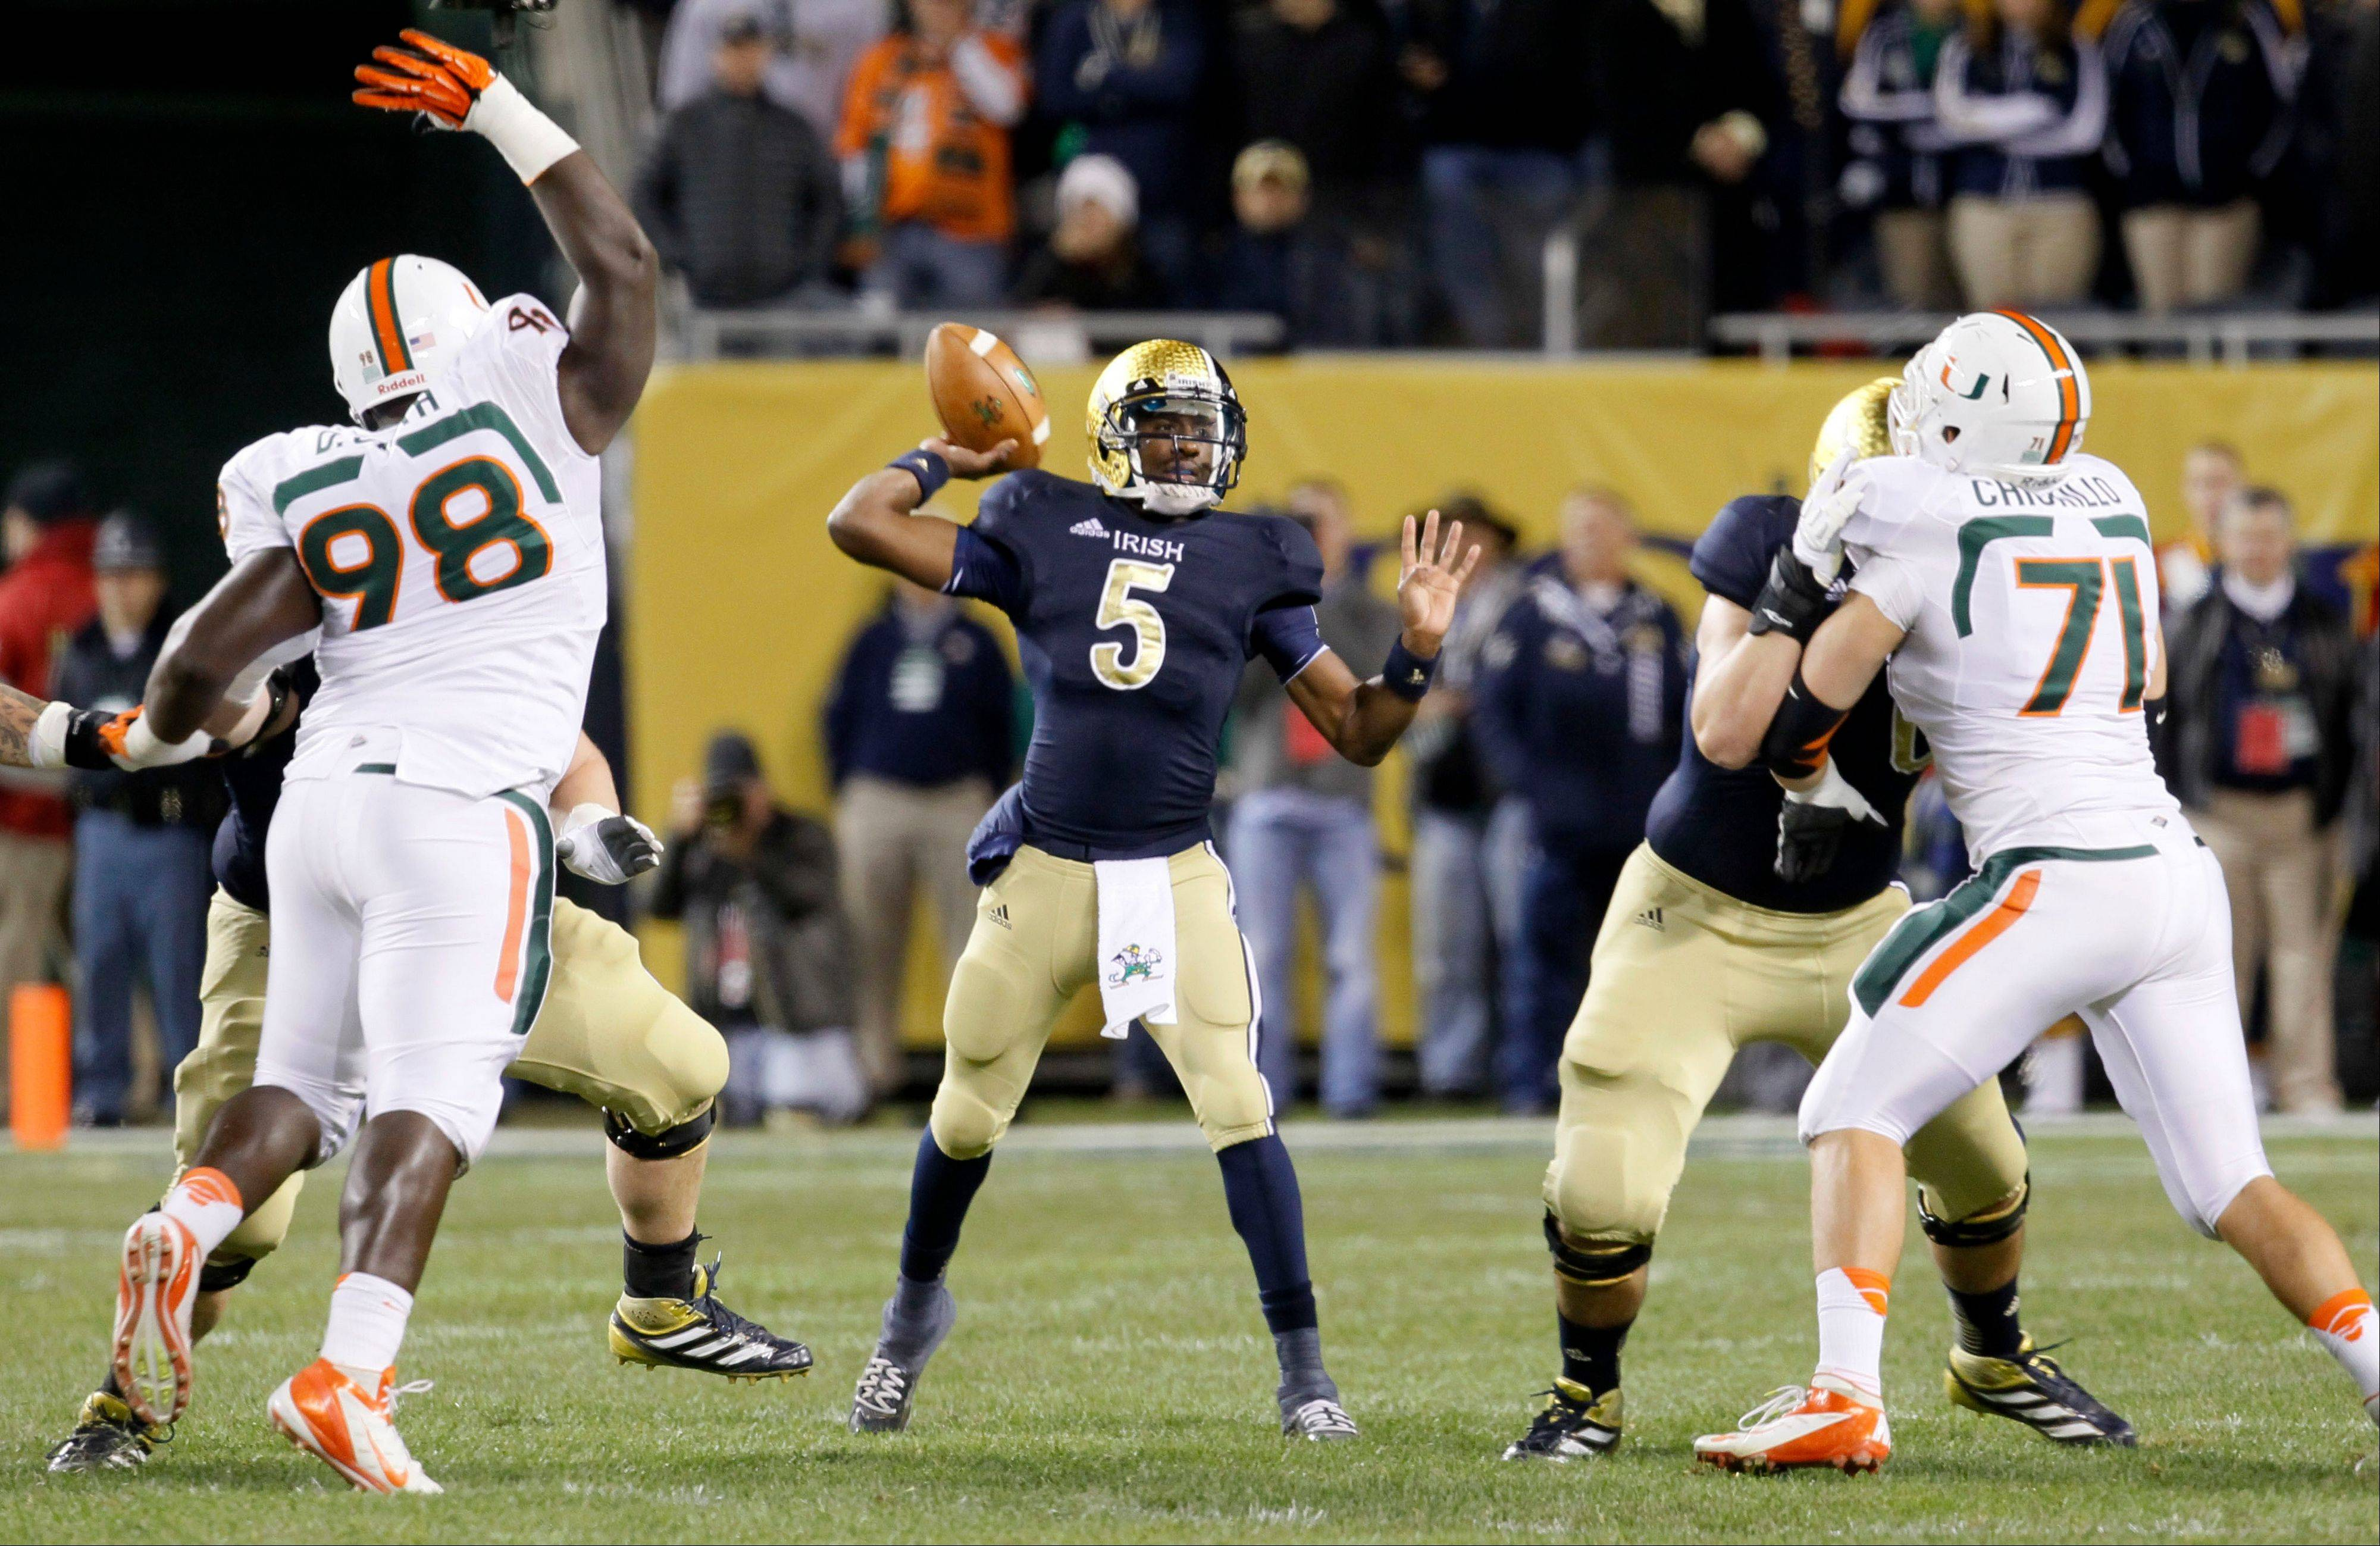 Notre Dame quarterback Everett Golson passes between Miami defensive linemen Darius Smith, left, and Anthony Chickillo during the first half Saturday at Chicago's Soldier Field.